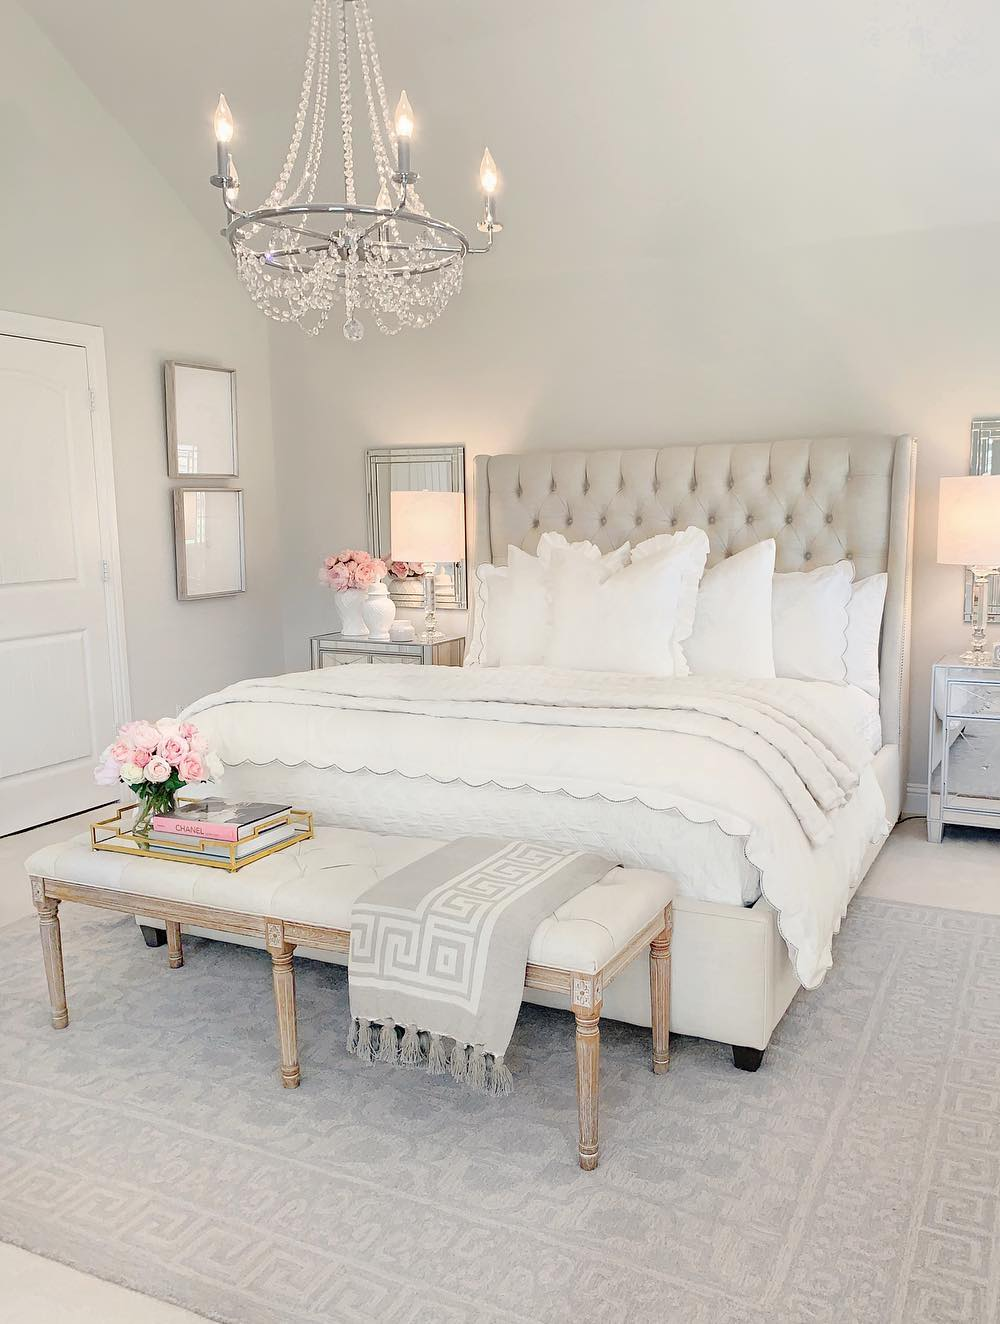 Neutral tufted headboard in bedroom via @thedecordiet